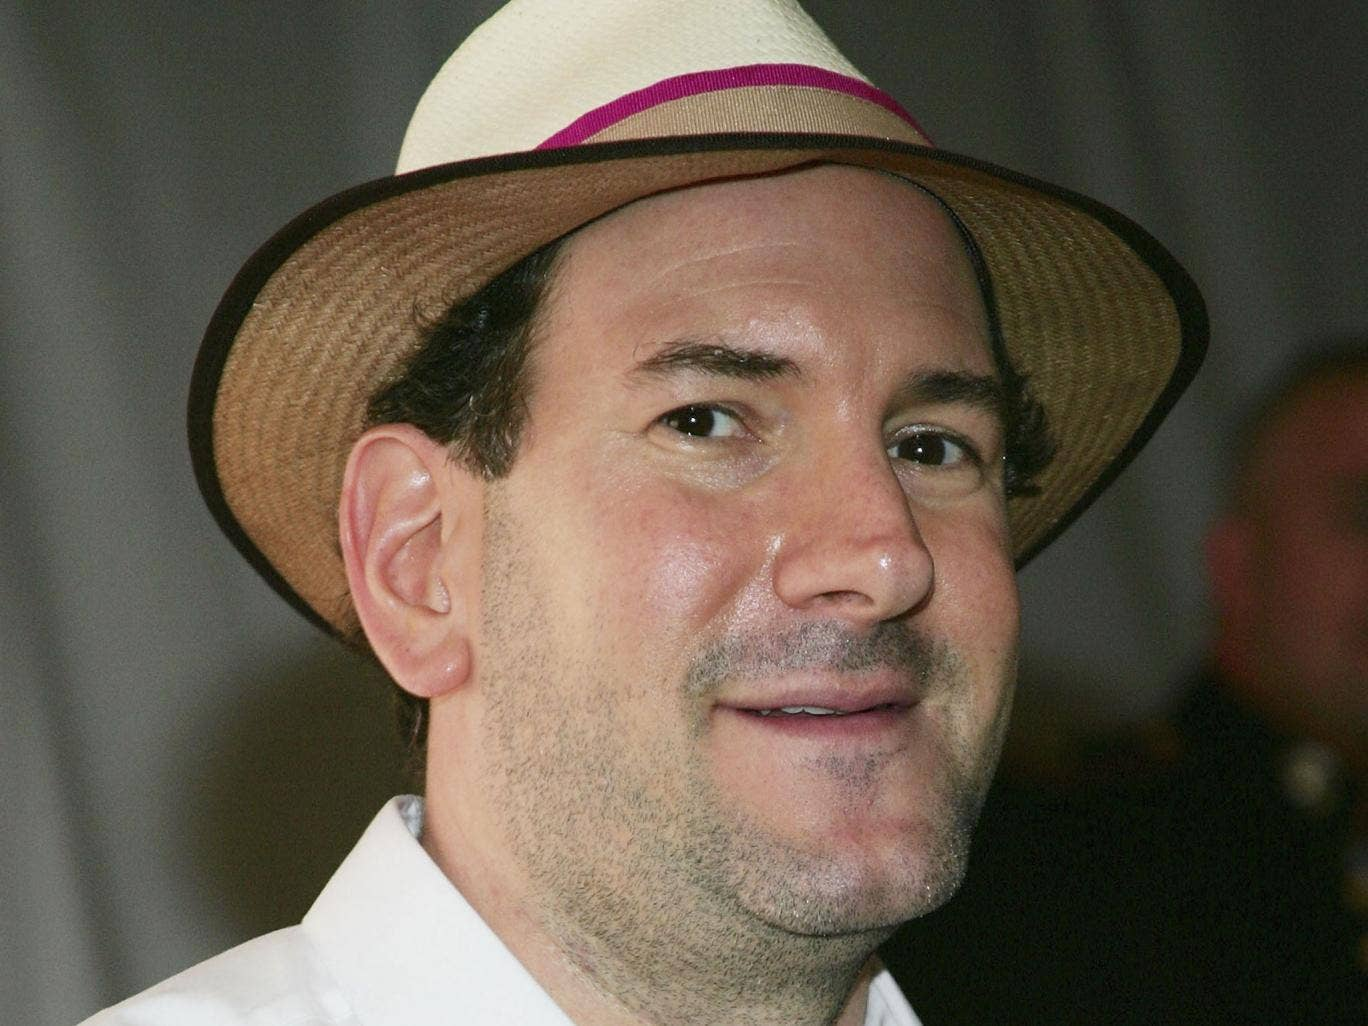 Matt Drudge, the founder of Drudge Report, who has mysteriously deleted every single tweet he has ever posted - except one